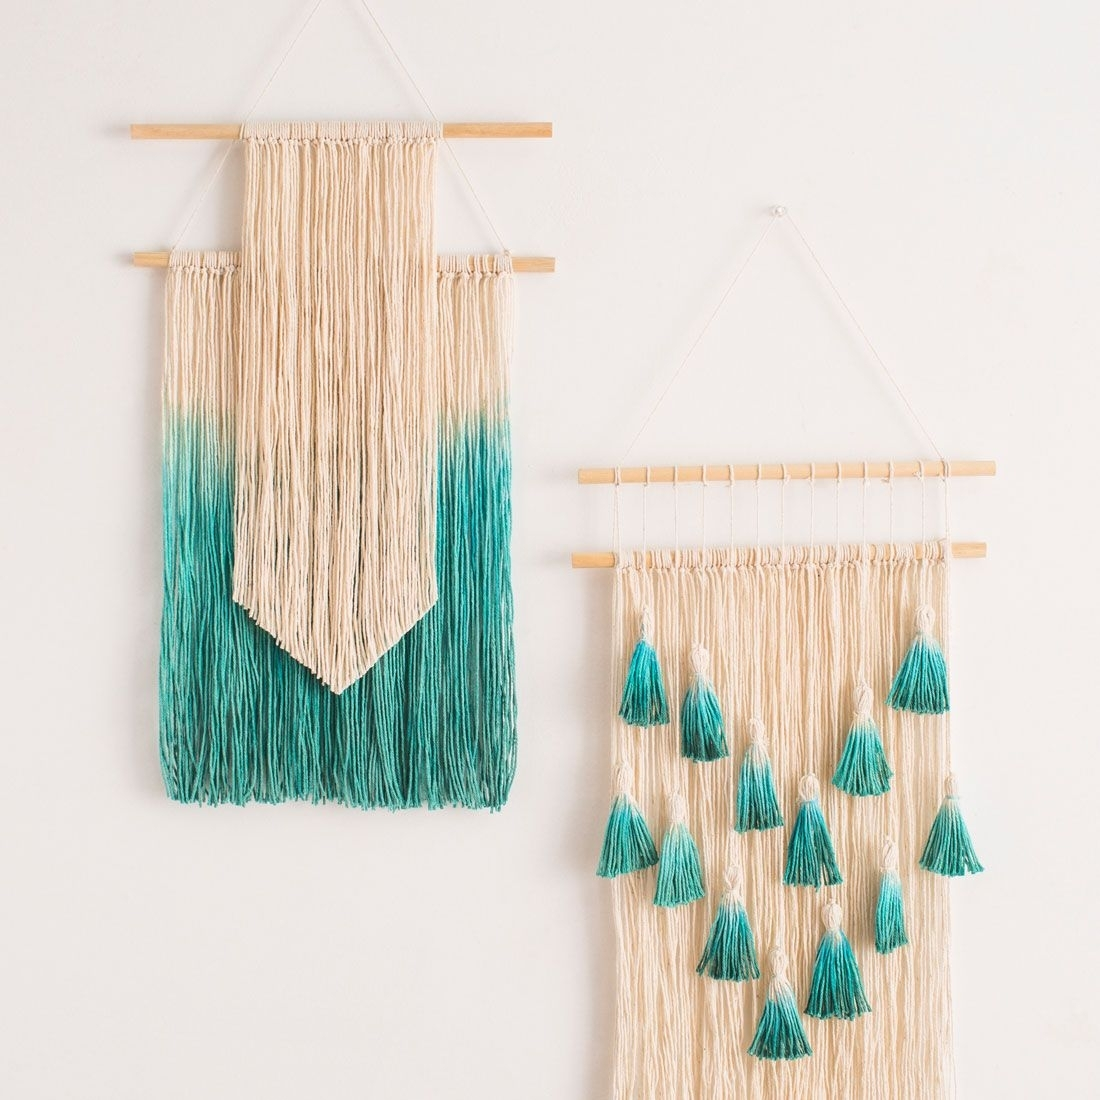 9 Diys For Your College Apartment | Diy Wall Art, Diy Wall And Intended For 2018 Diy Textile Wall Art (View 4 of 15)